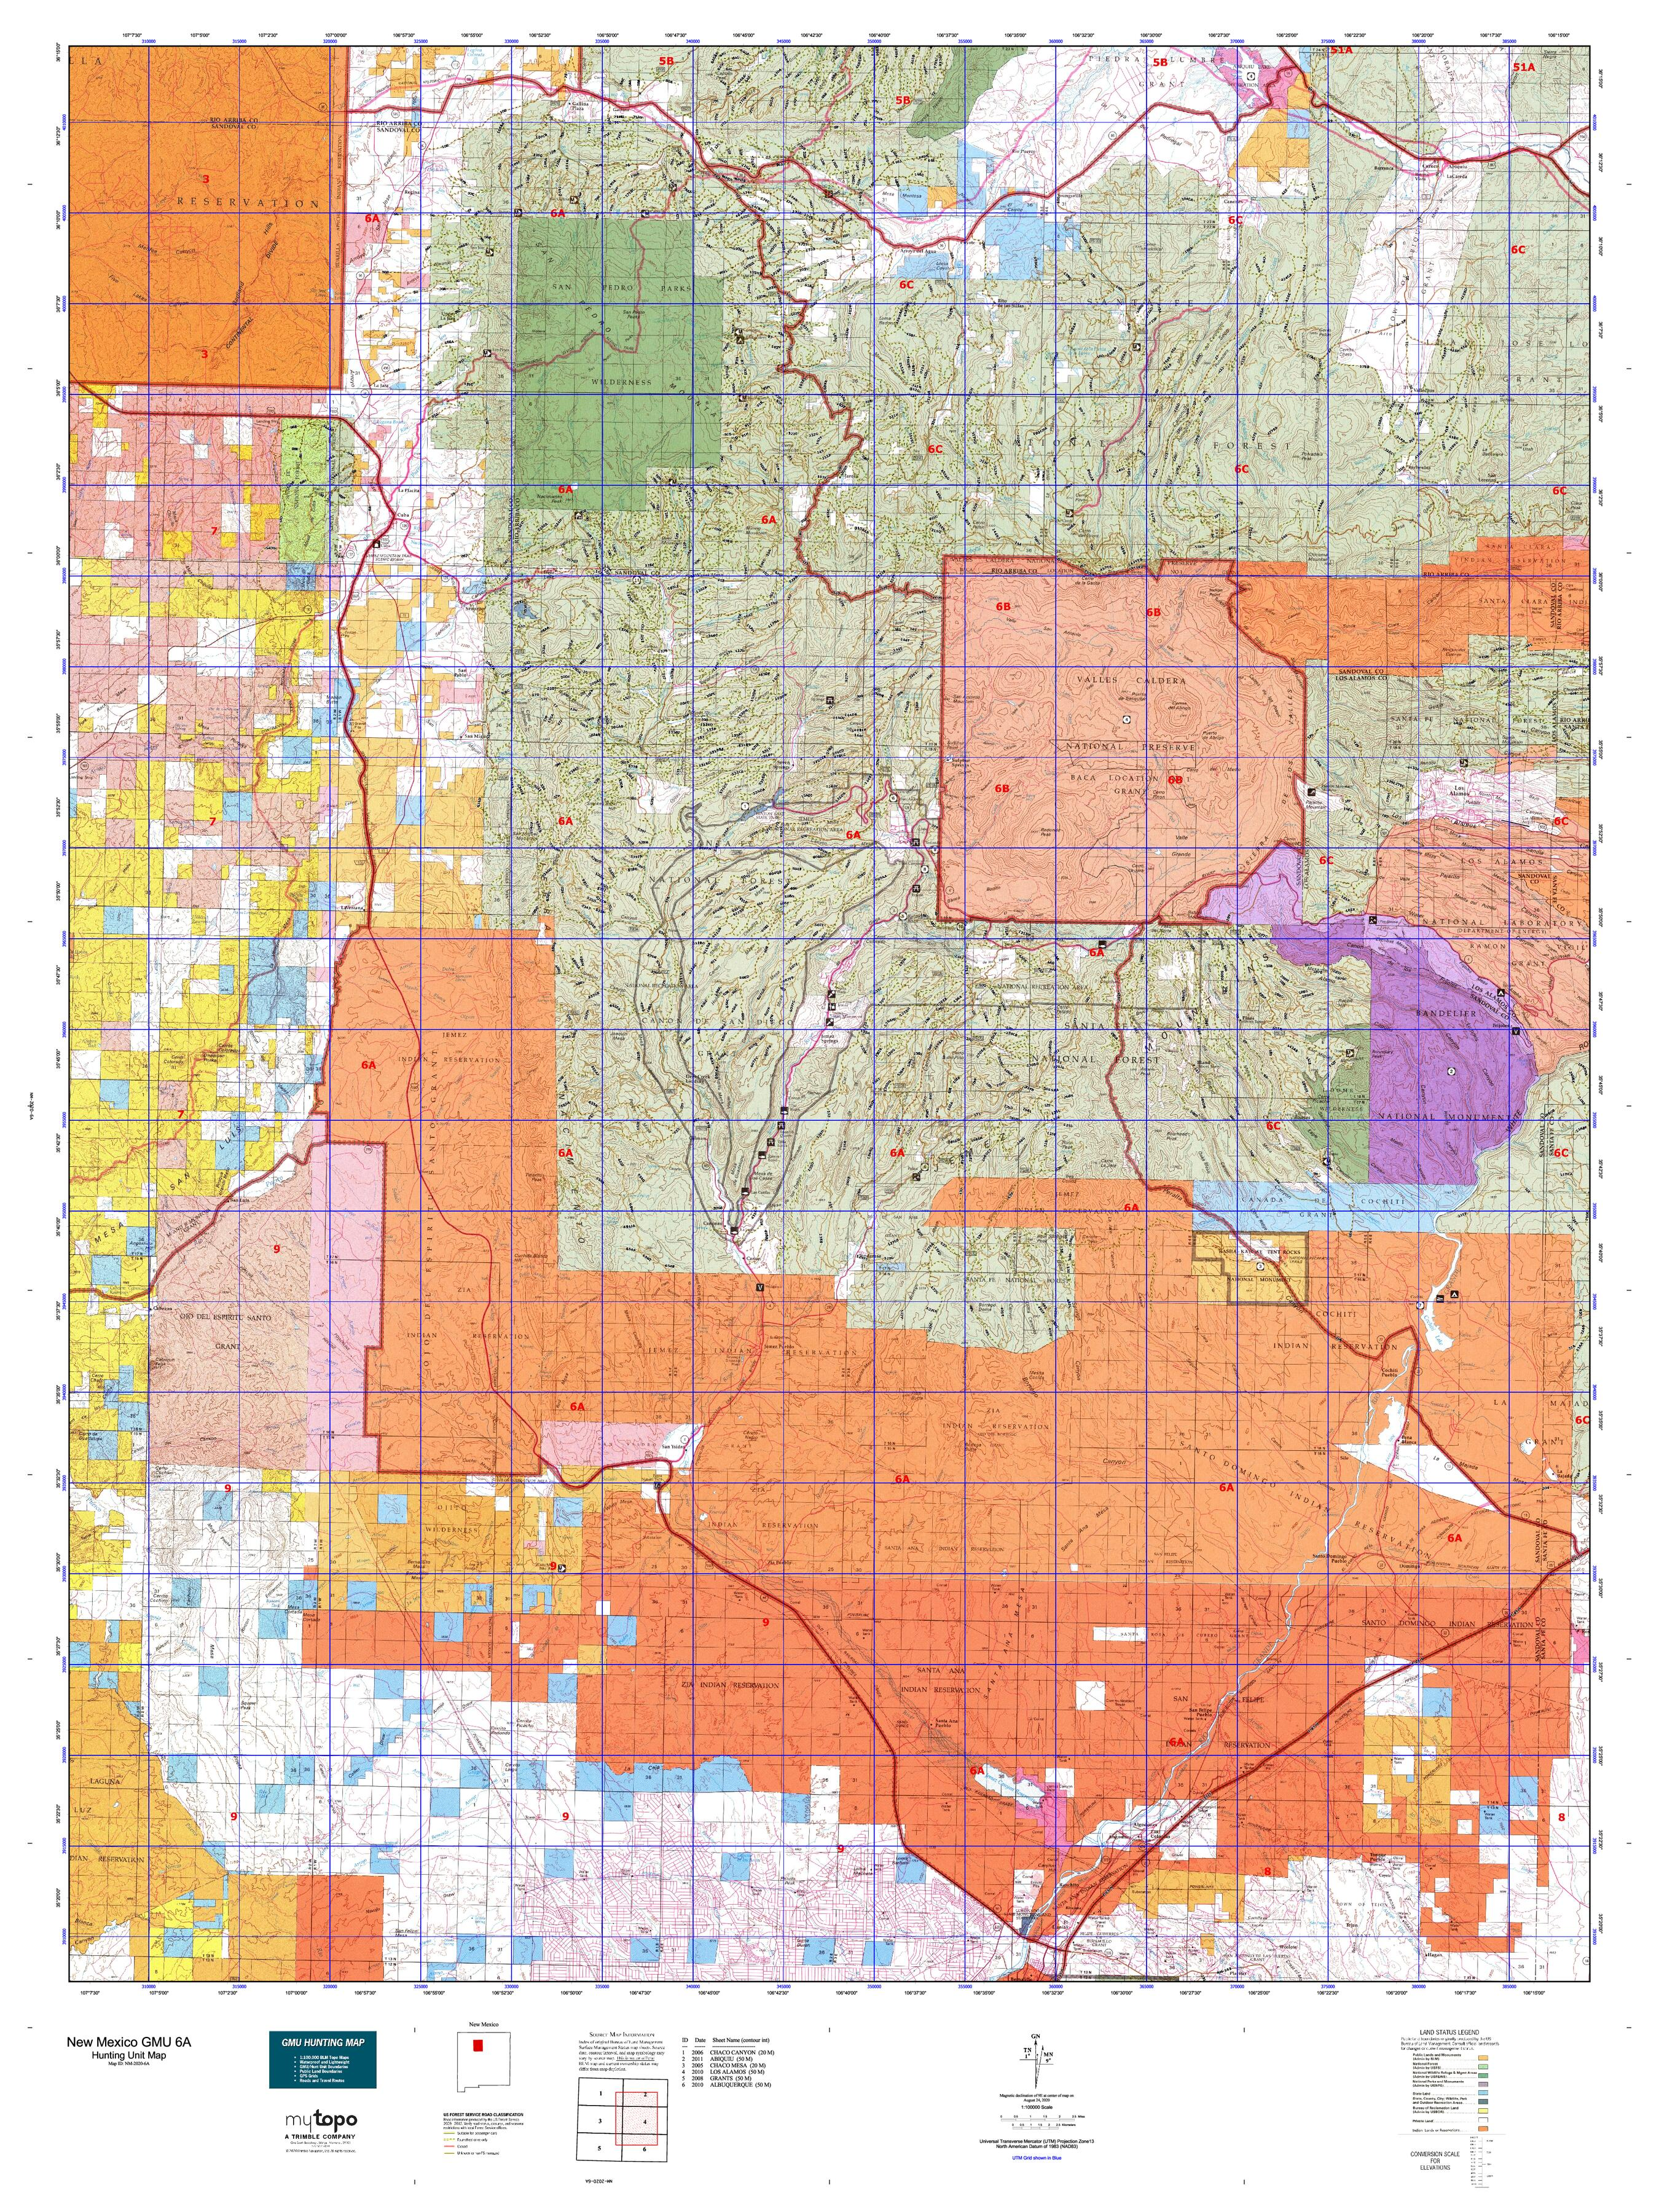 unit 6a new mexico map New Mexico Gmu 6a Map Mytopo